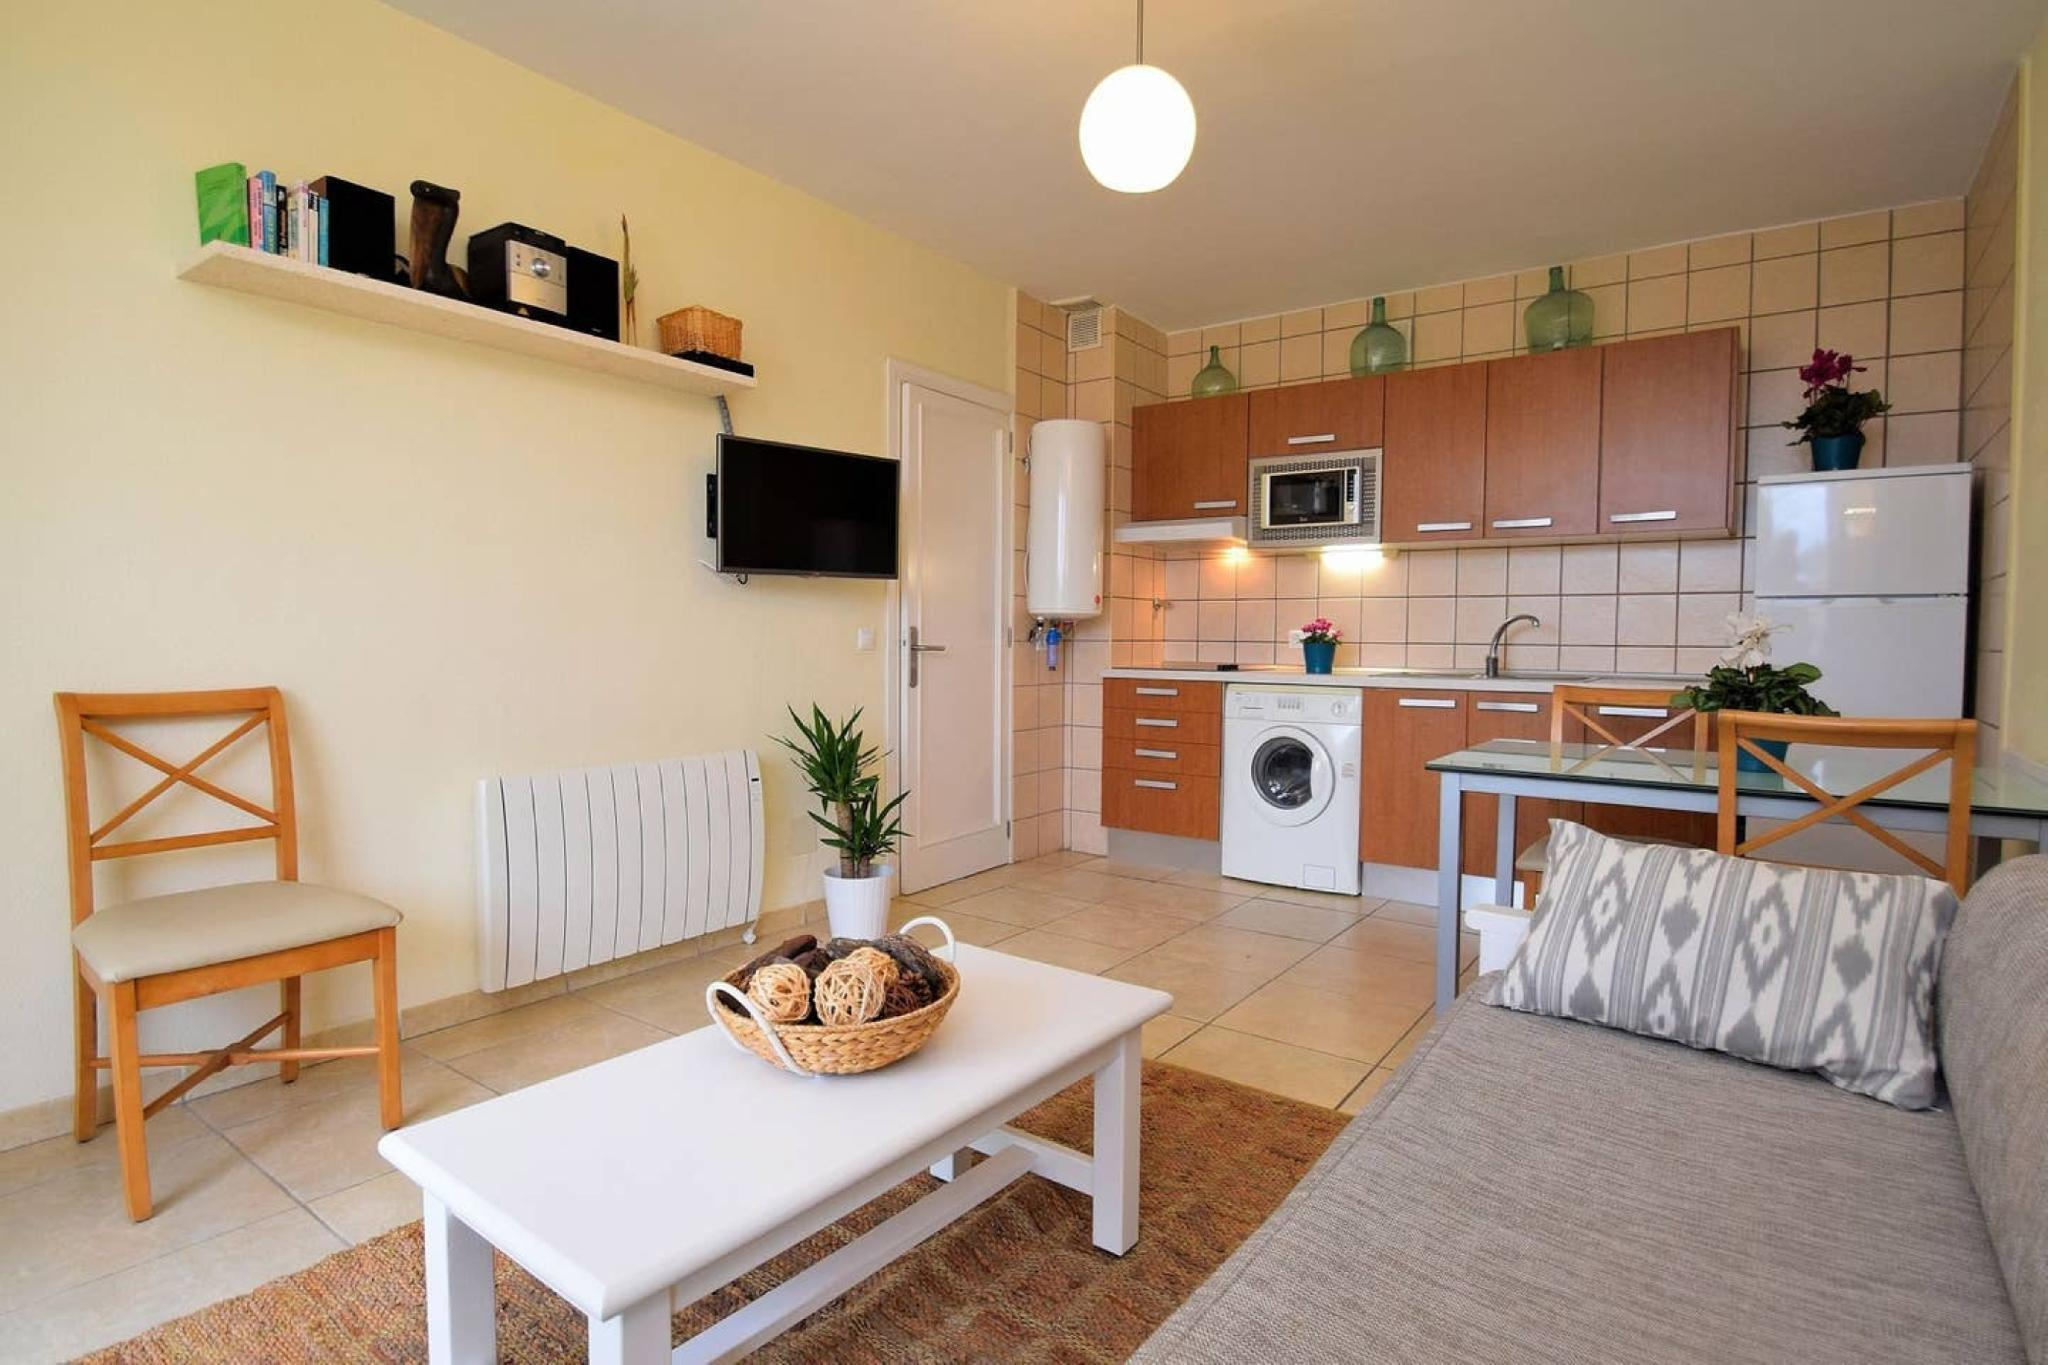 107893- Apartment in Can Picafort